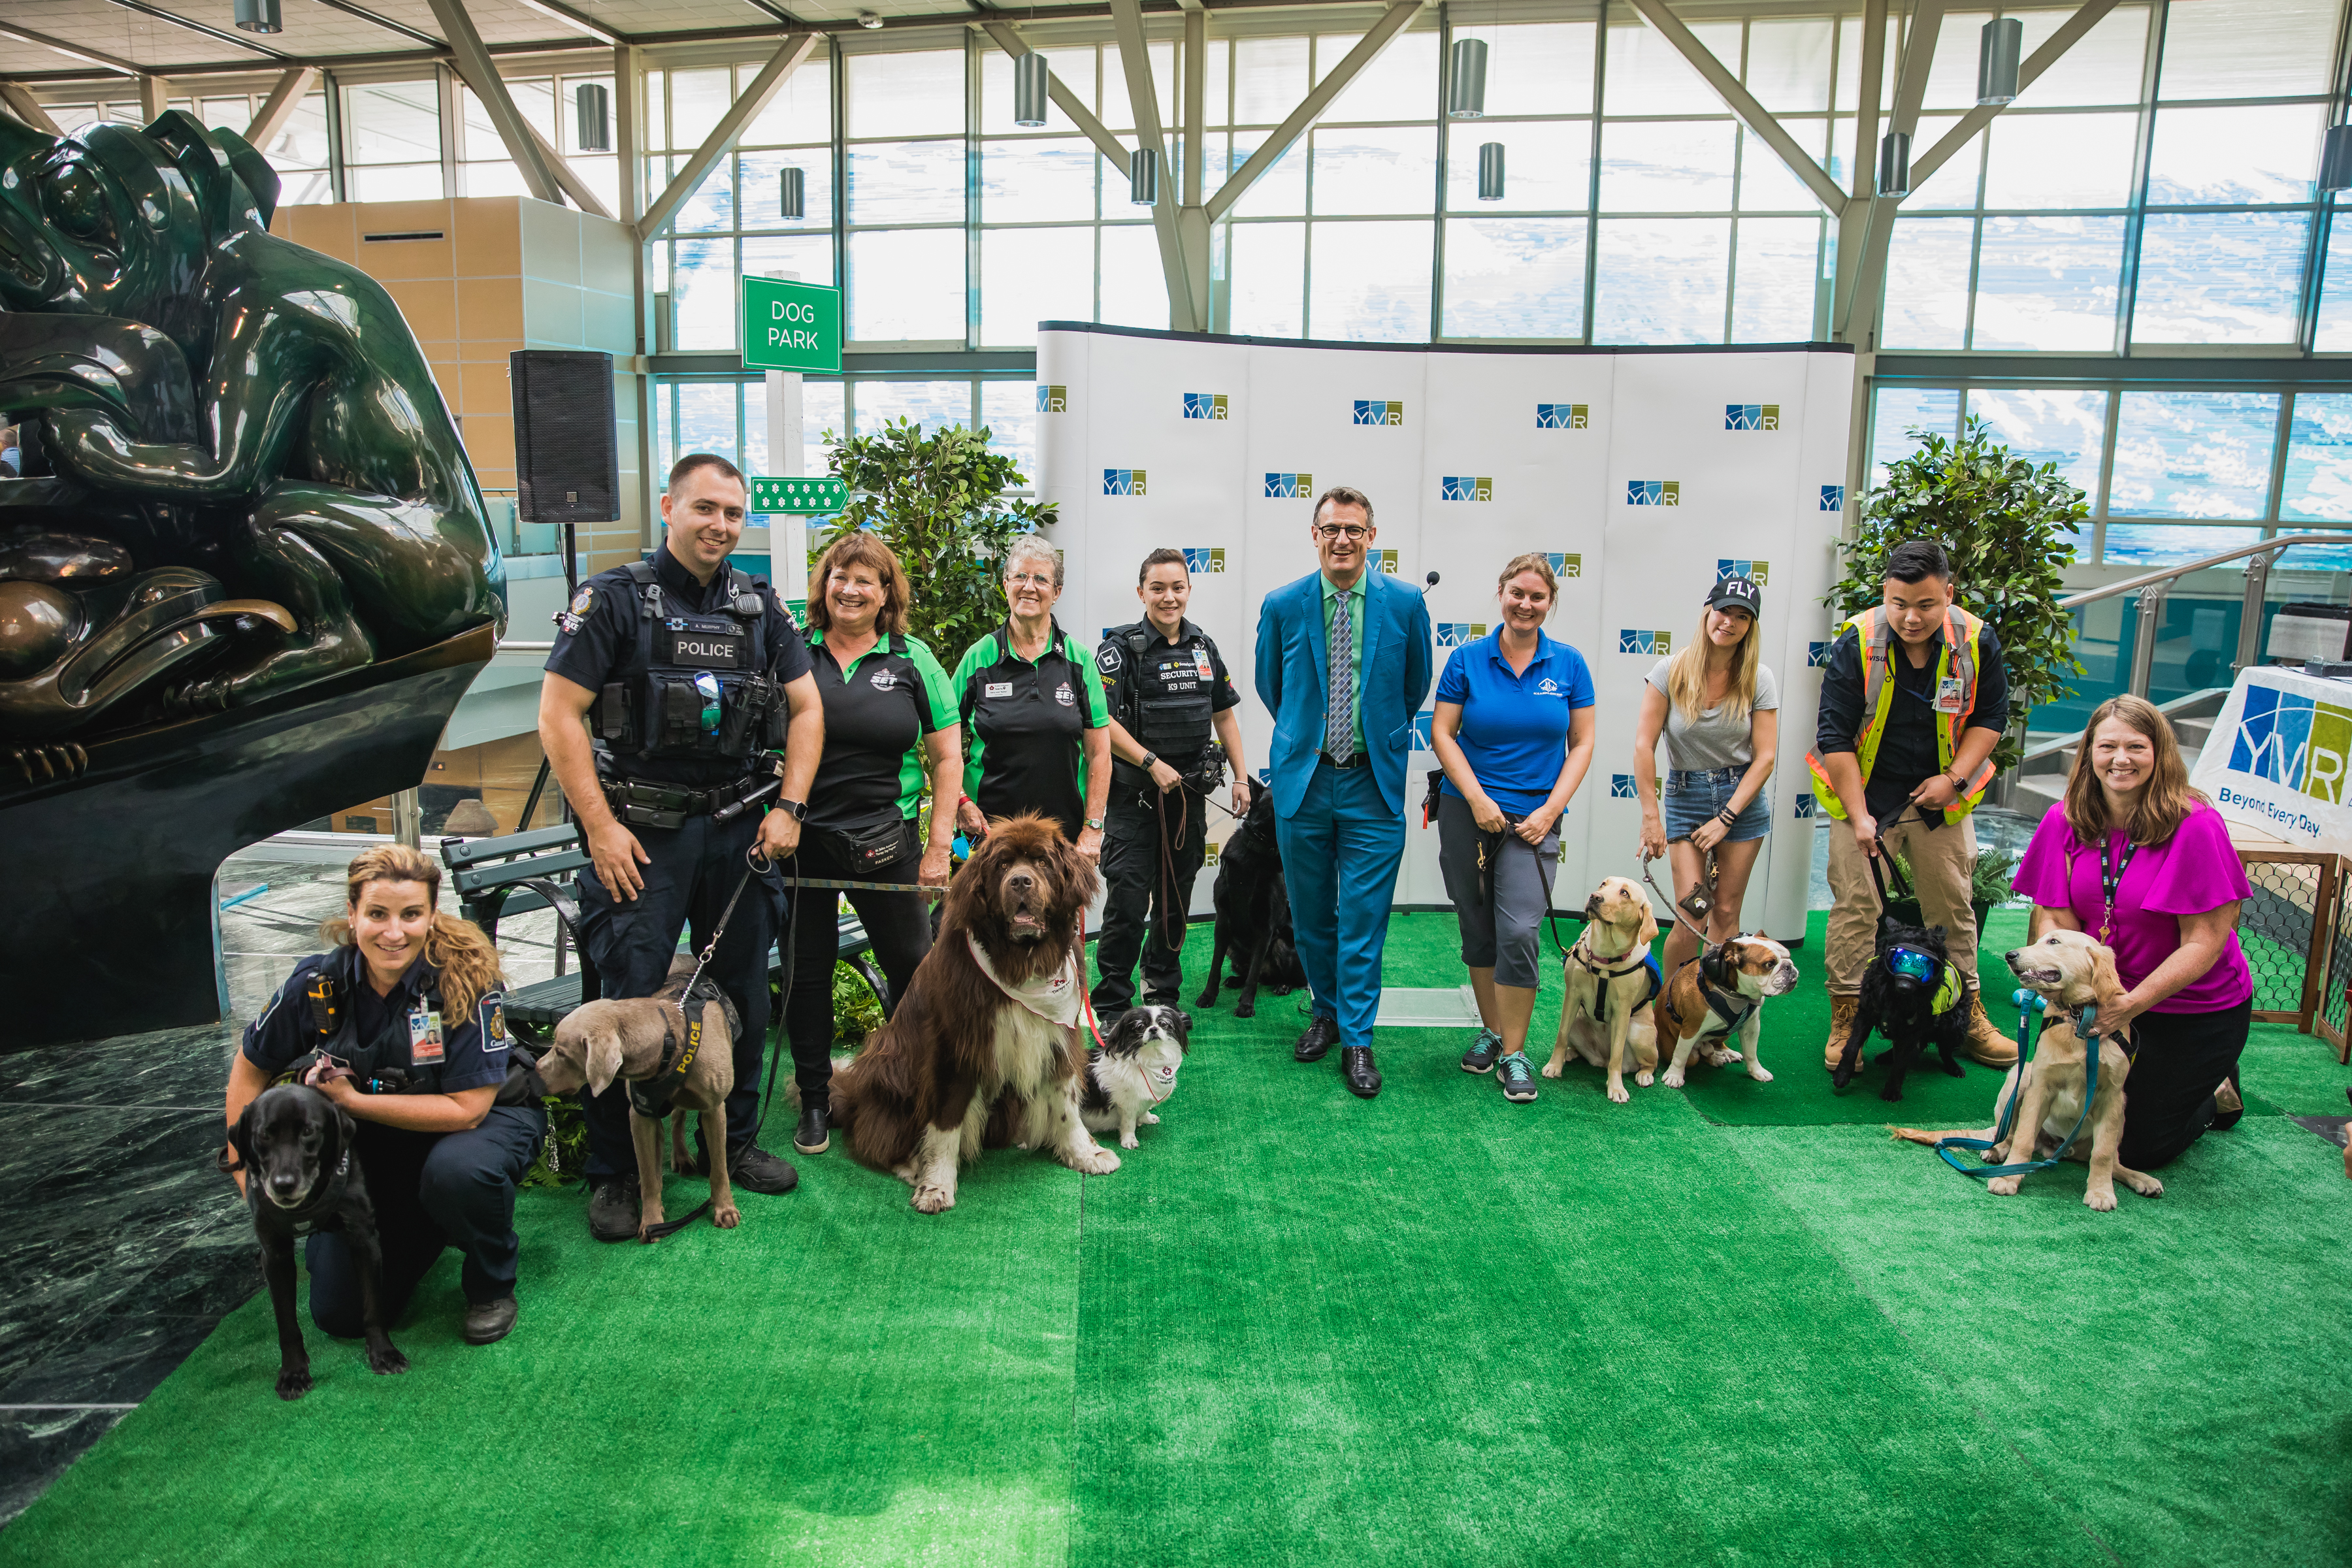 YVR celebrated the first ever Dog Days of Summer event at the airport. From left to right are representatives from Canada Border Services Agency (CBSA); Transit Police; St. John Ambulance; Securiguard; Reg Krake, Director, Customer Care, Vancouver Airport Authority; BC & Alberta Guide Dogs; Mister Bentley; YVR's Wildlife Team in partnership with Avisure and Pacific Assistance Dogs Society (PADS).